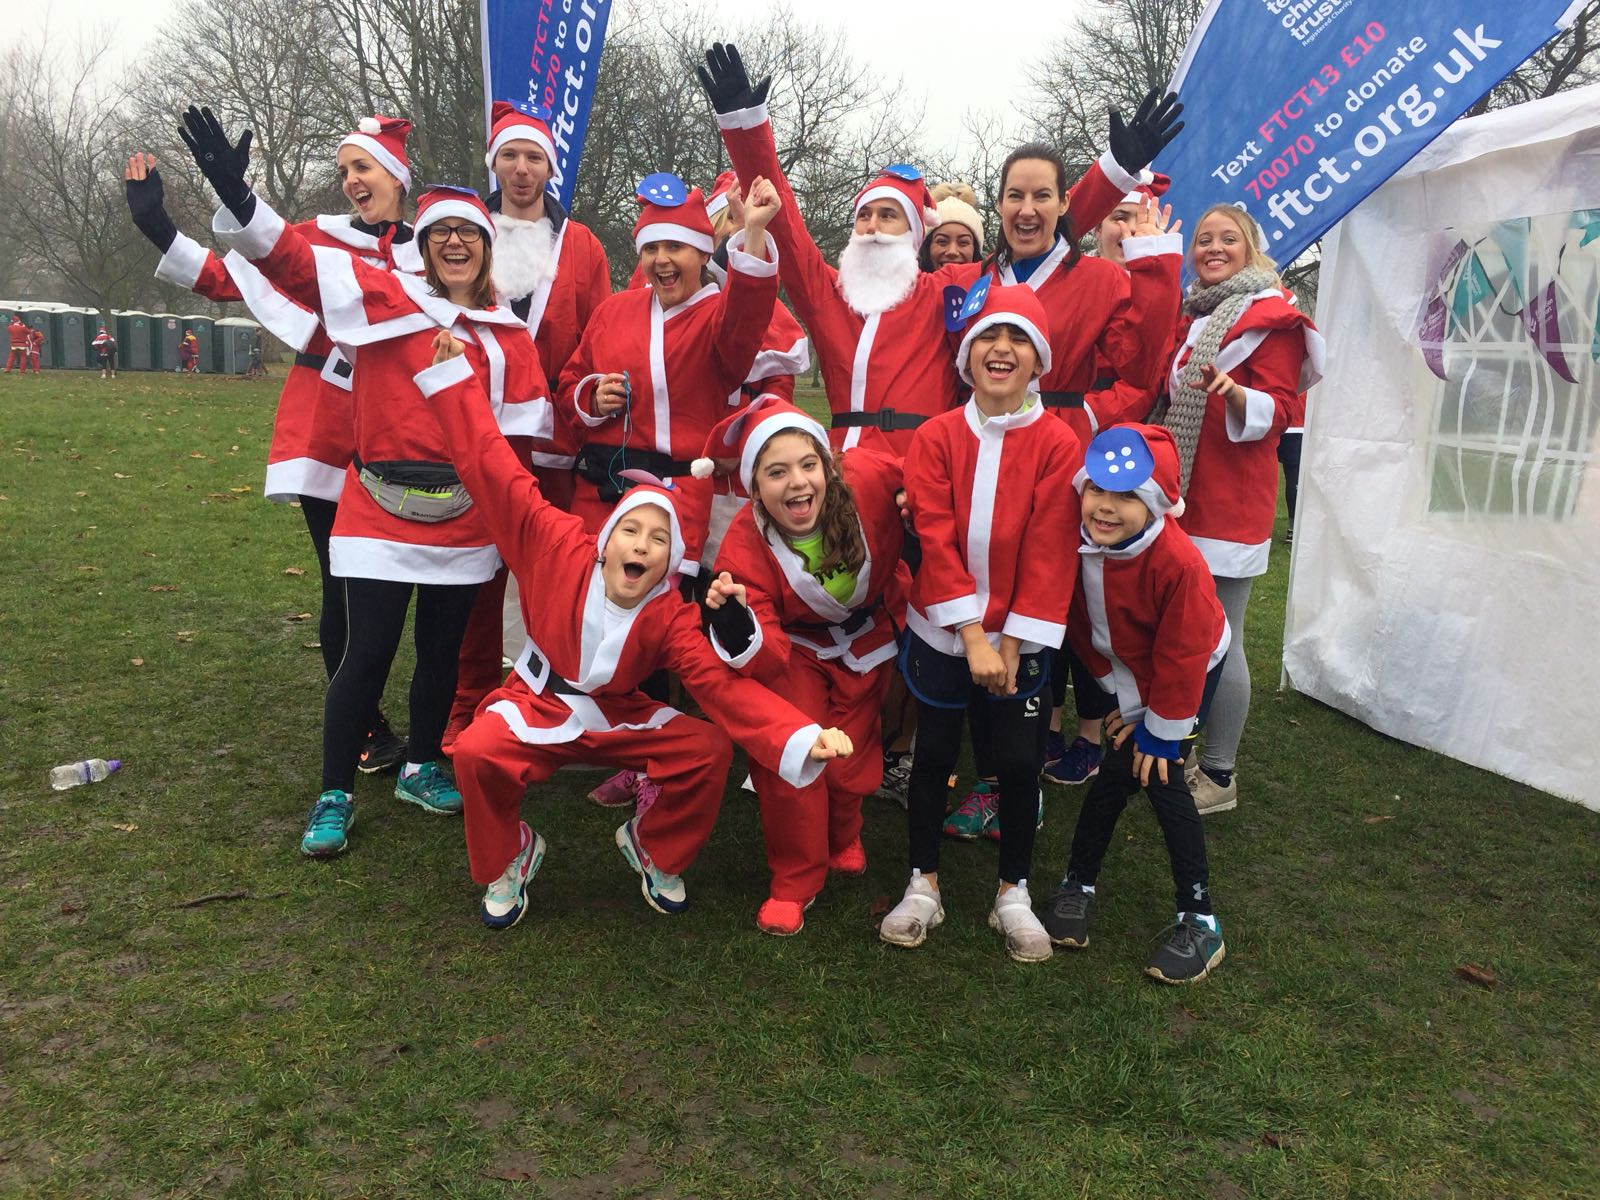 Team picture of Santa runners.